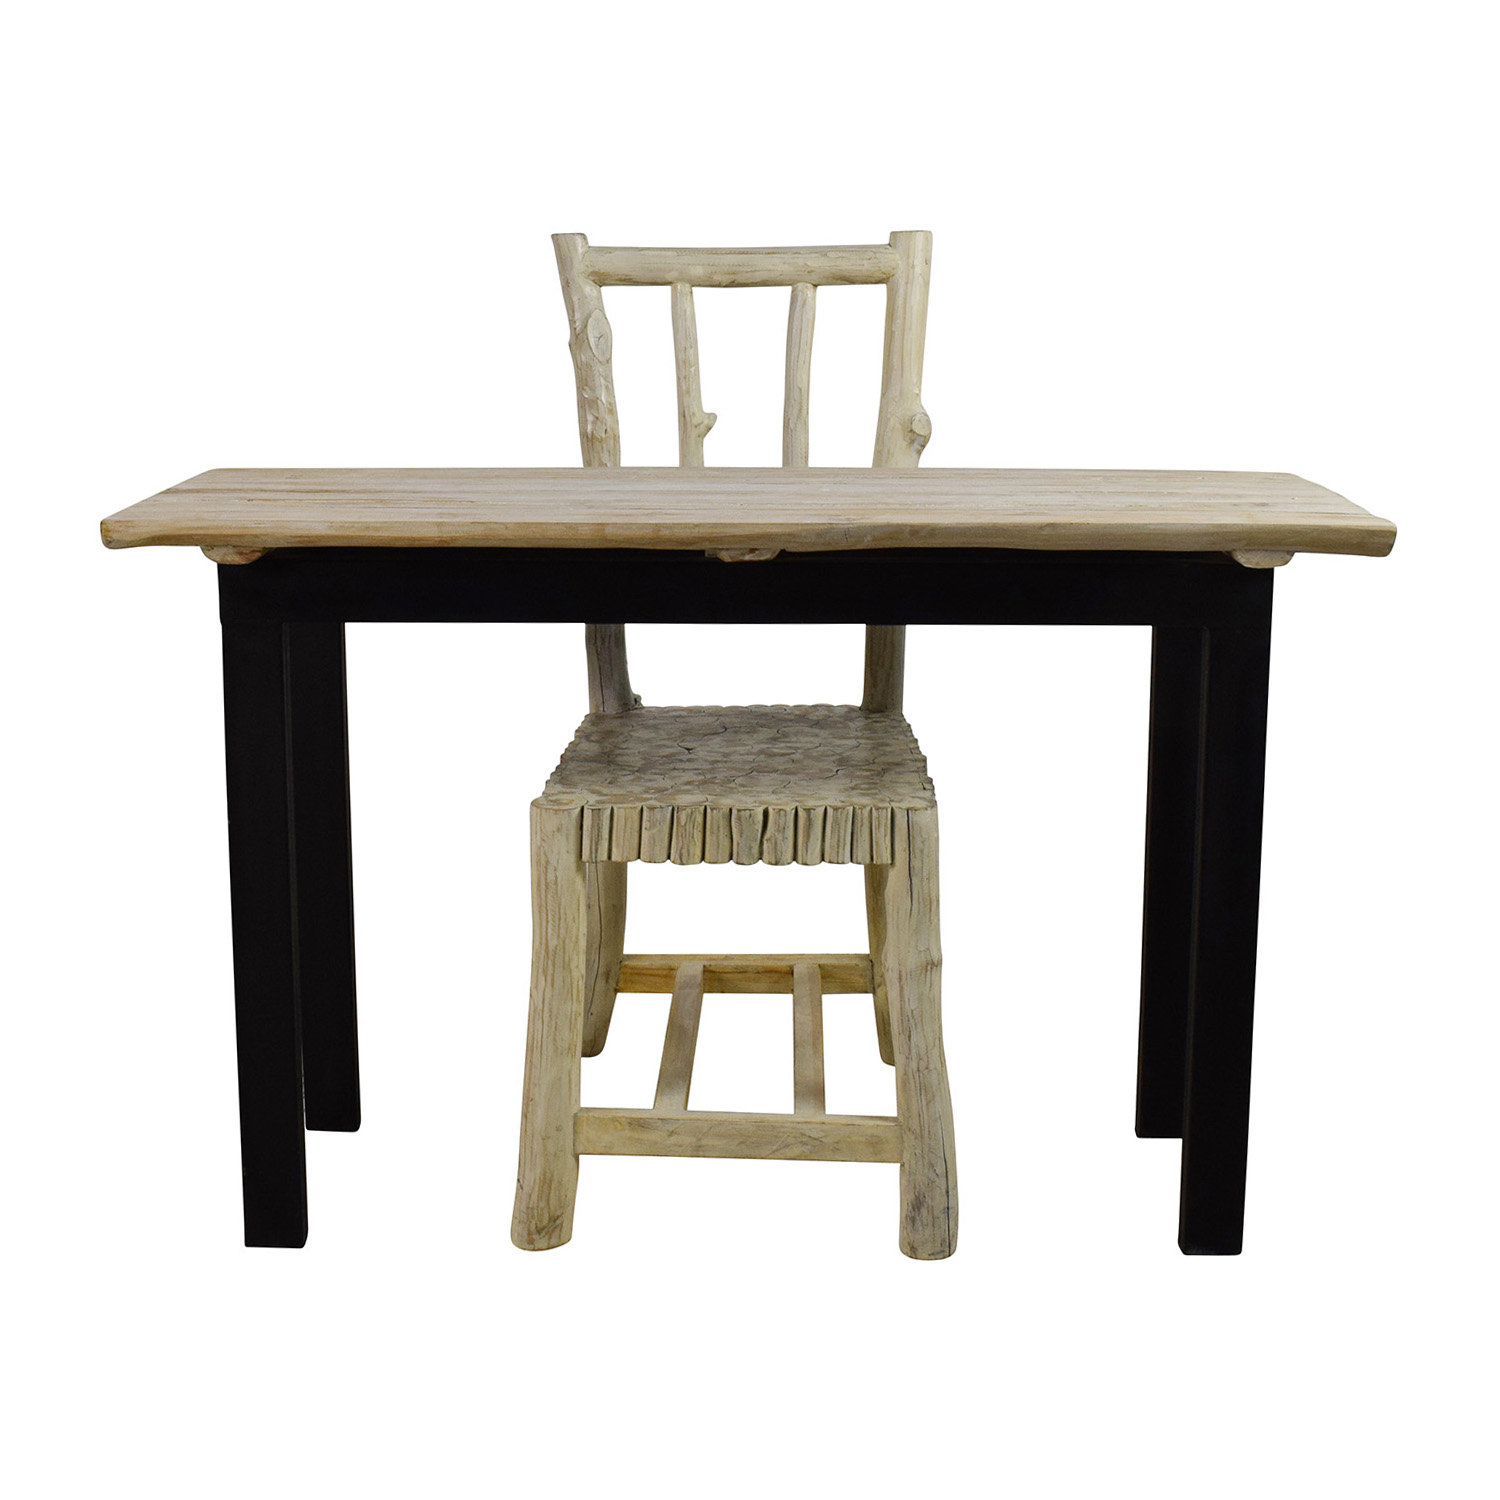 Nadeau Handcrafted Rustic Table and Chair sale